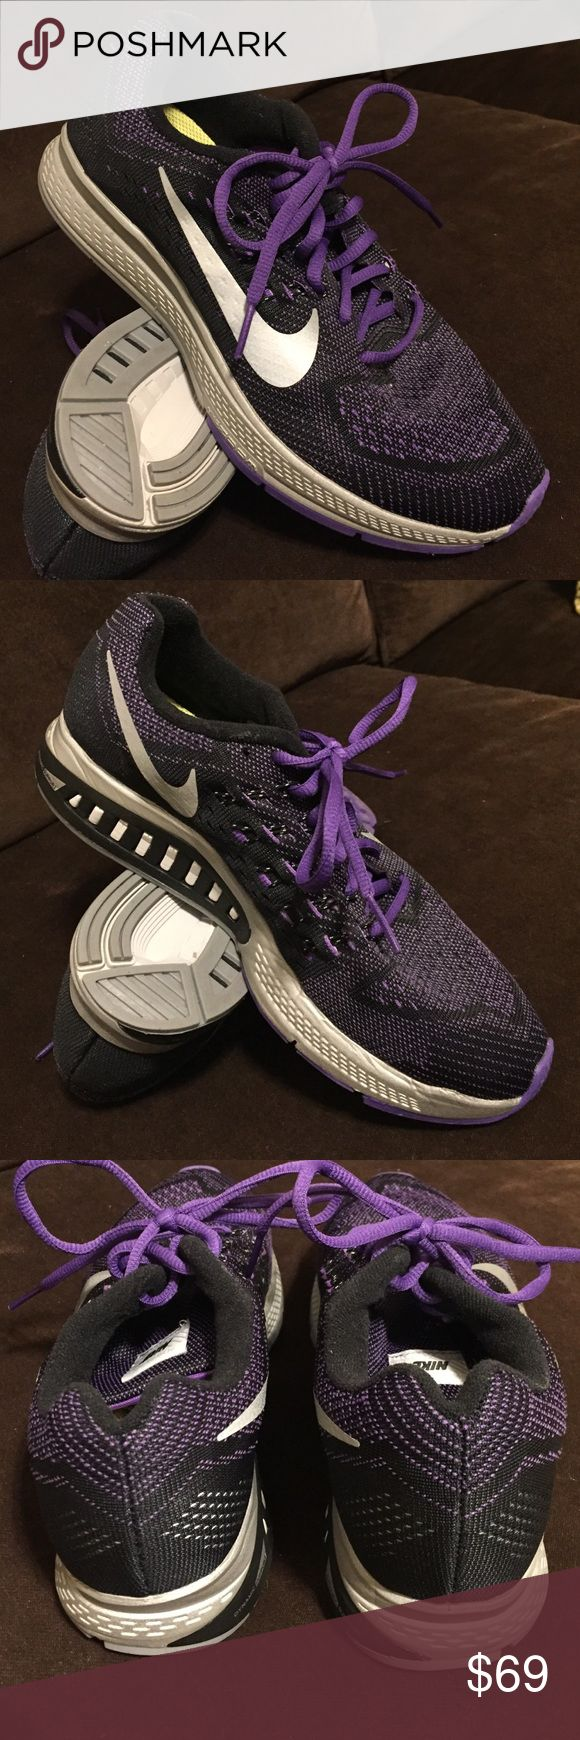 Nike zoom air structure 18 black purple sz 8.5 40 Excellent condition Nike air zoom structure 18. Black and purple Flyknit mesh uppers and volt Yellow insoles. Nike Shoes Athletic Shoes